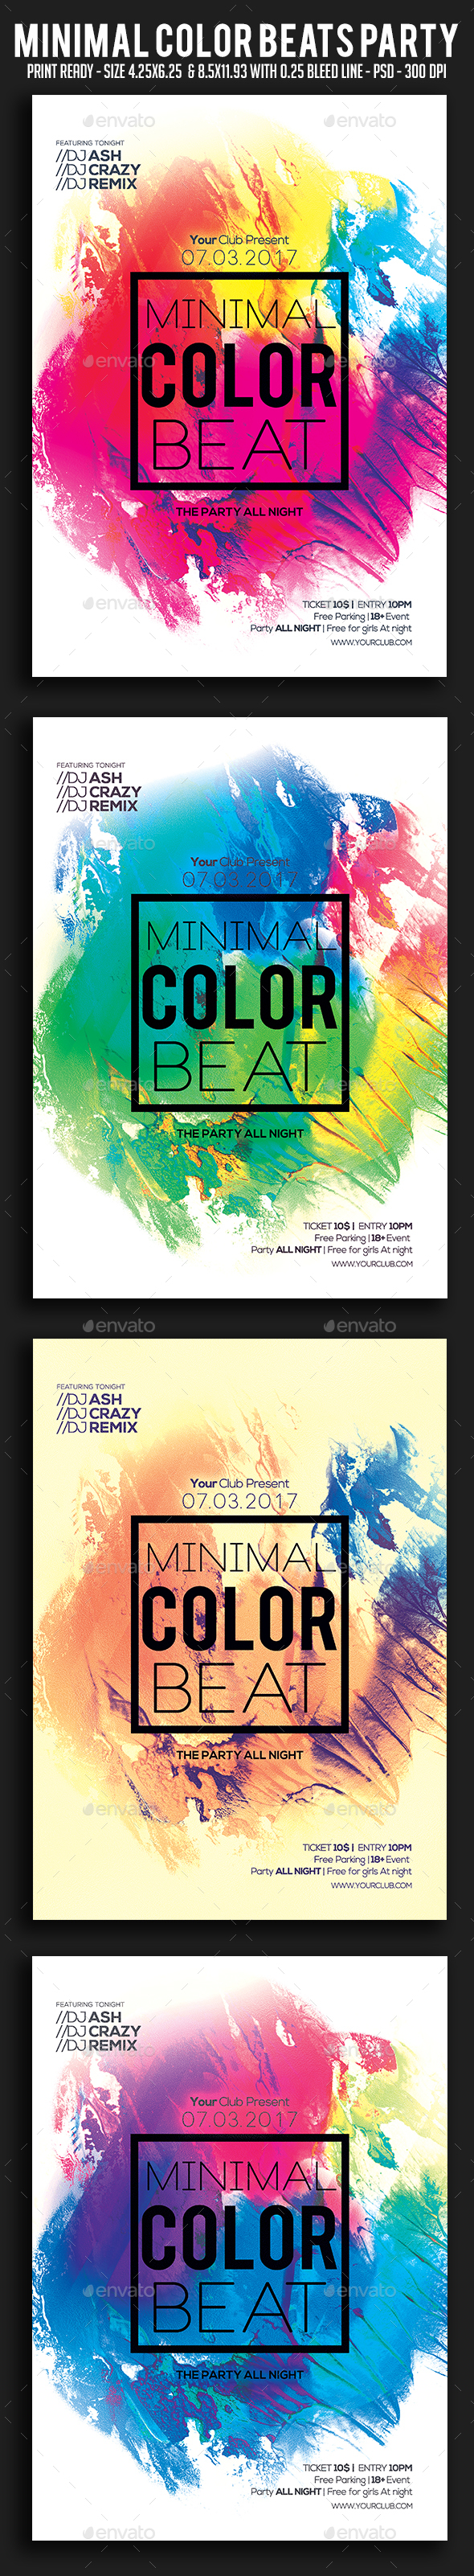 GraphicRiver Minimal Color Beats Party Flyer 20698574